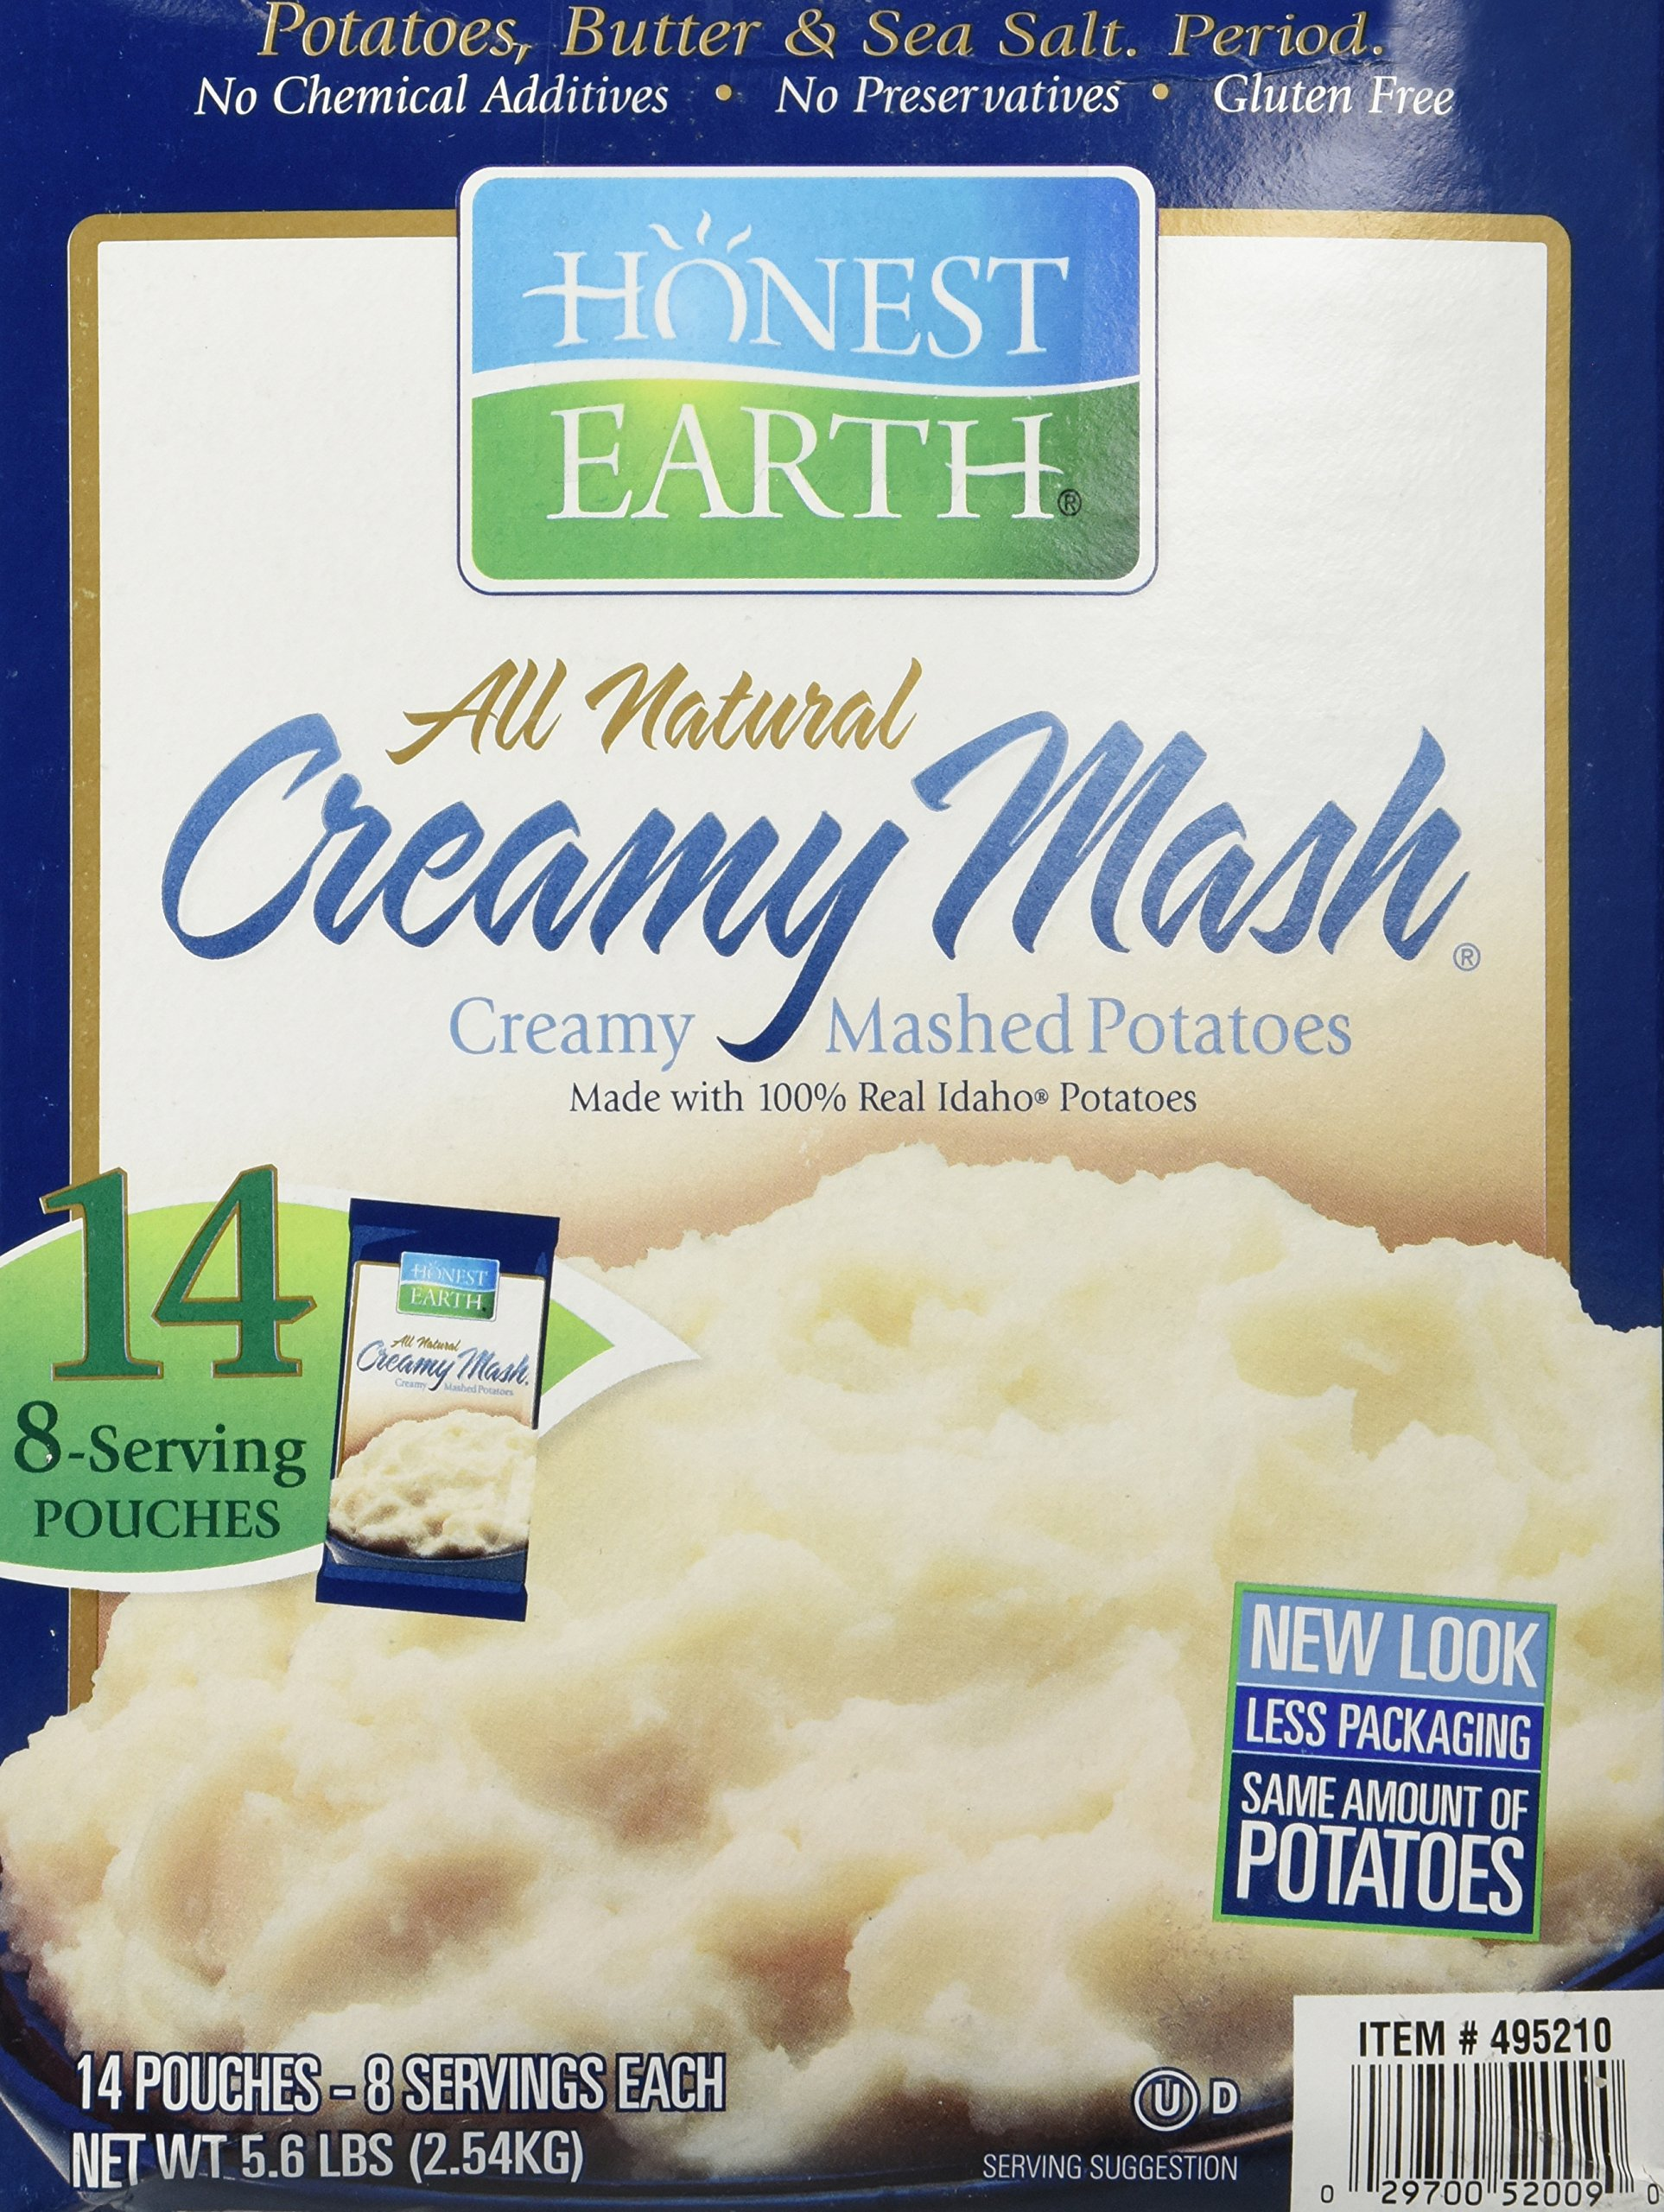 Honest Earth All-Natural Creamy Mash, Made with 100% Real Idaho Potatoes, 5.6lb Box includes 14 Pouches (8 Servings Each) by Idahoan